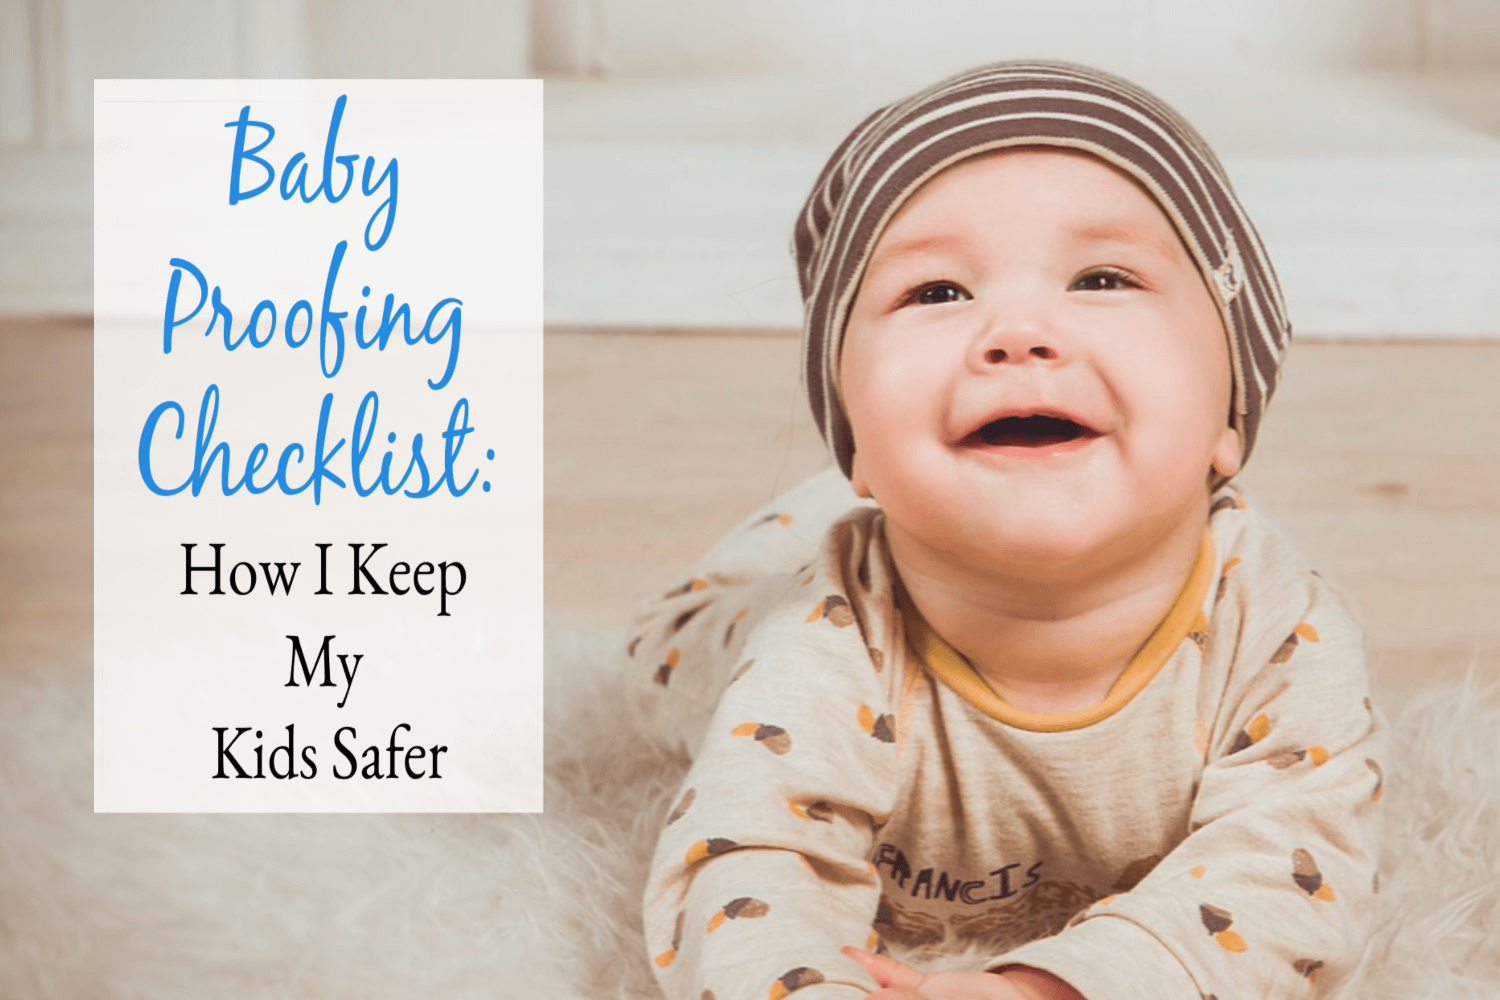 Baby Proofing Checklist: How An ER Nurse Keeps Her Kids Safer